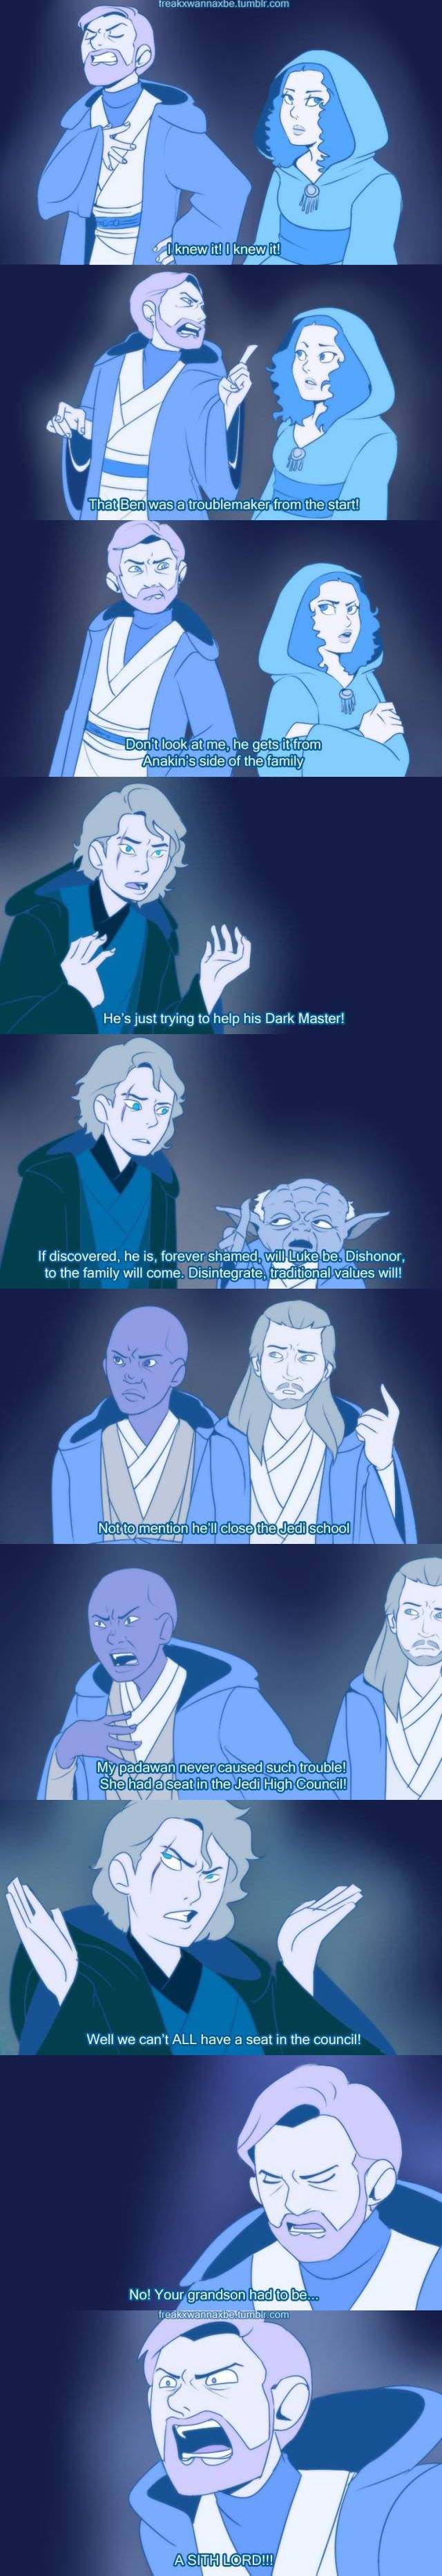 Mysterious as the dark side of the force - Alternative Disney #Mulan